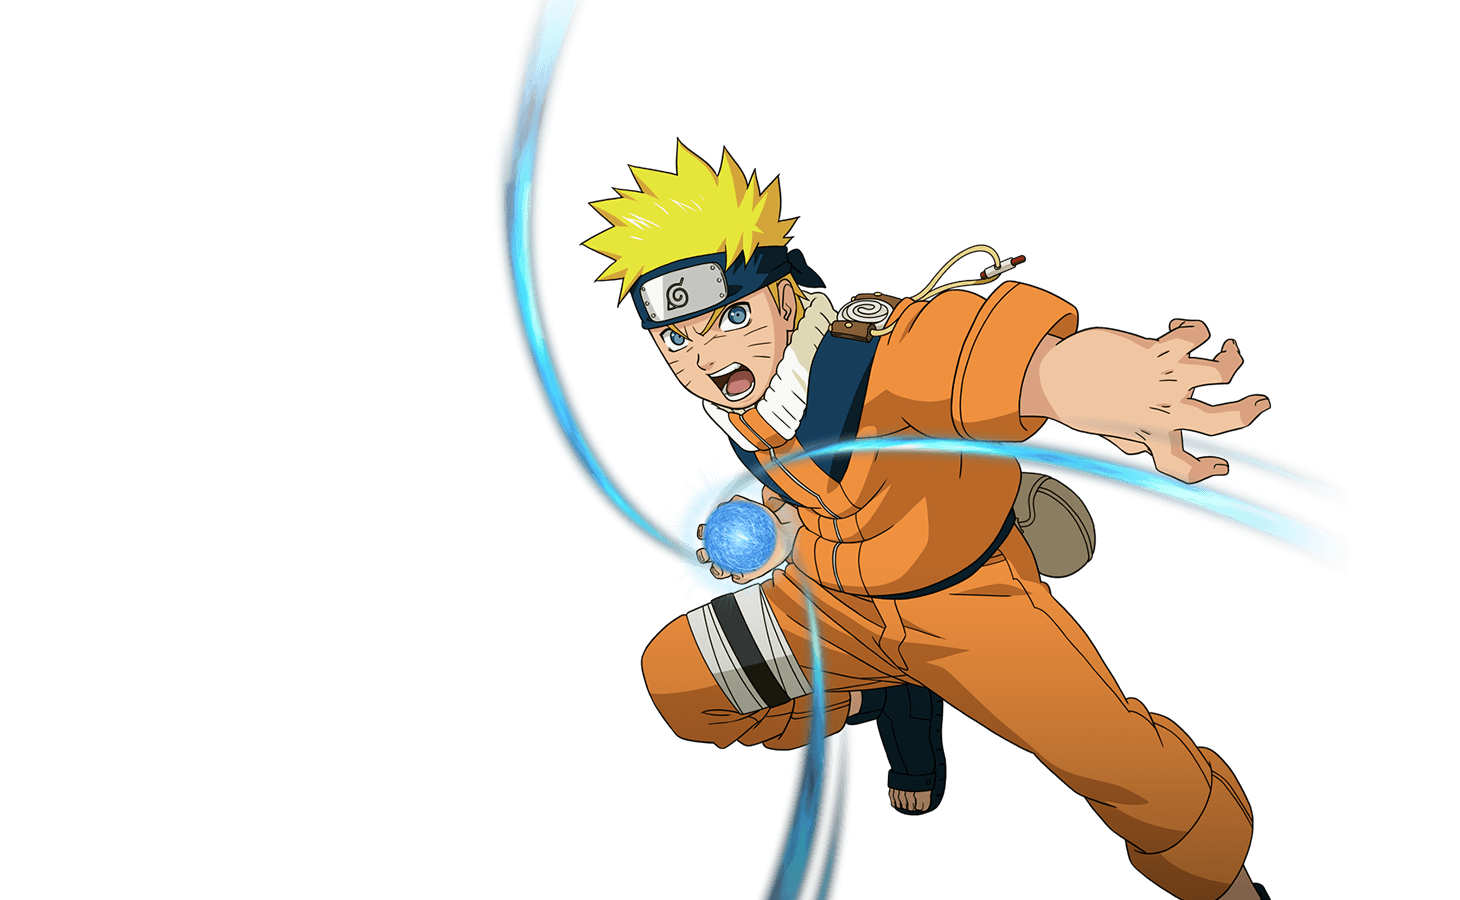 Naruto run png. Game played in the